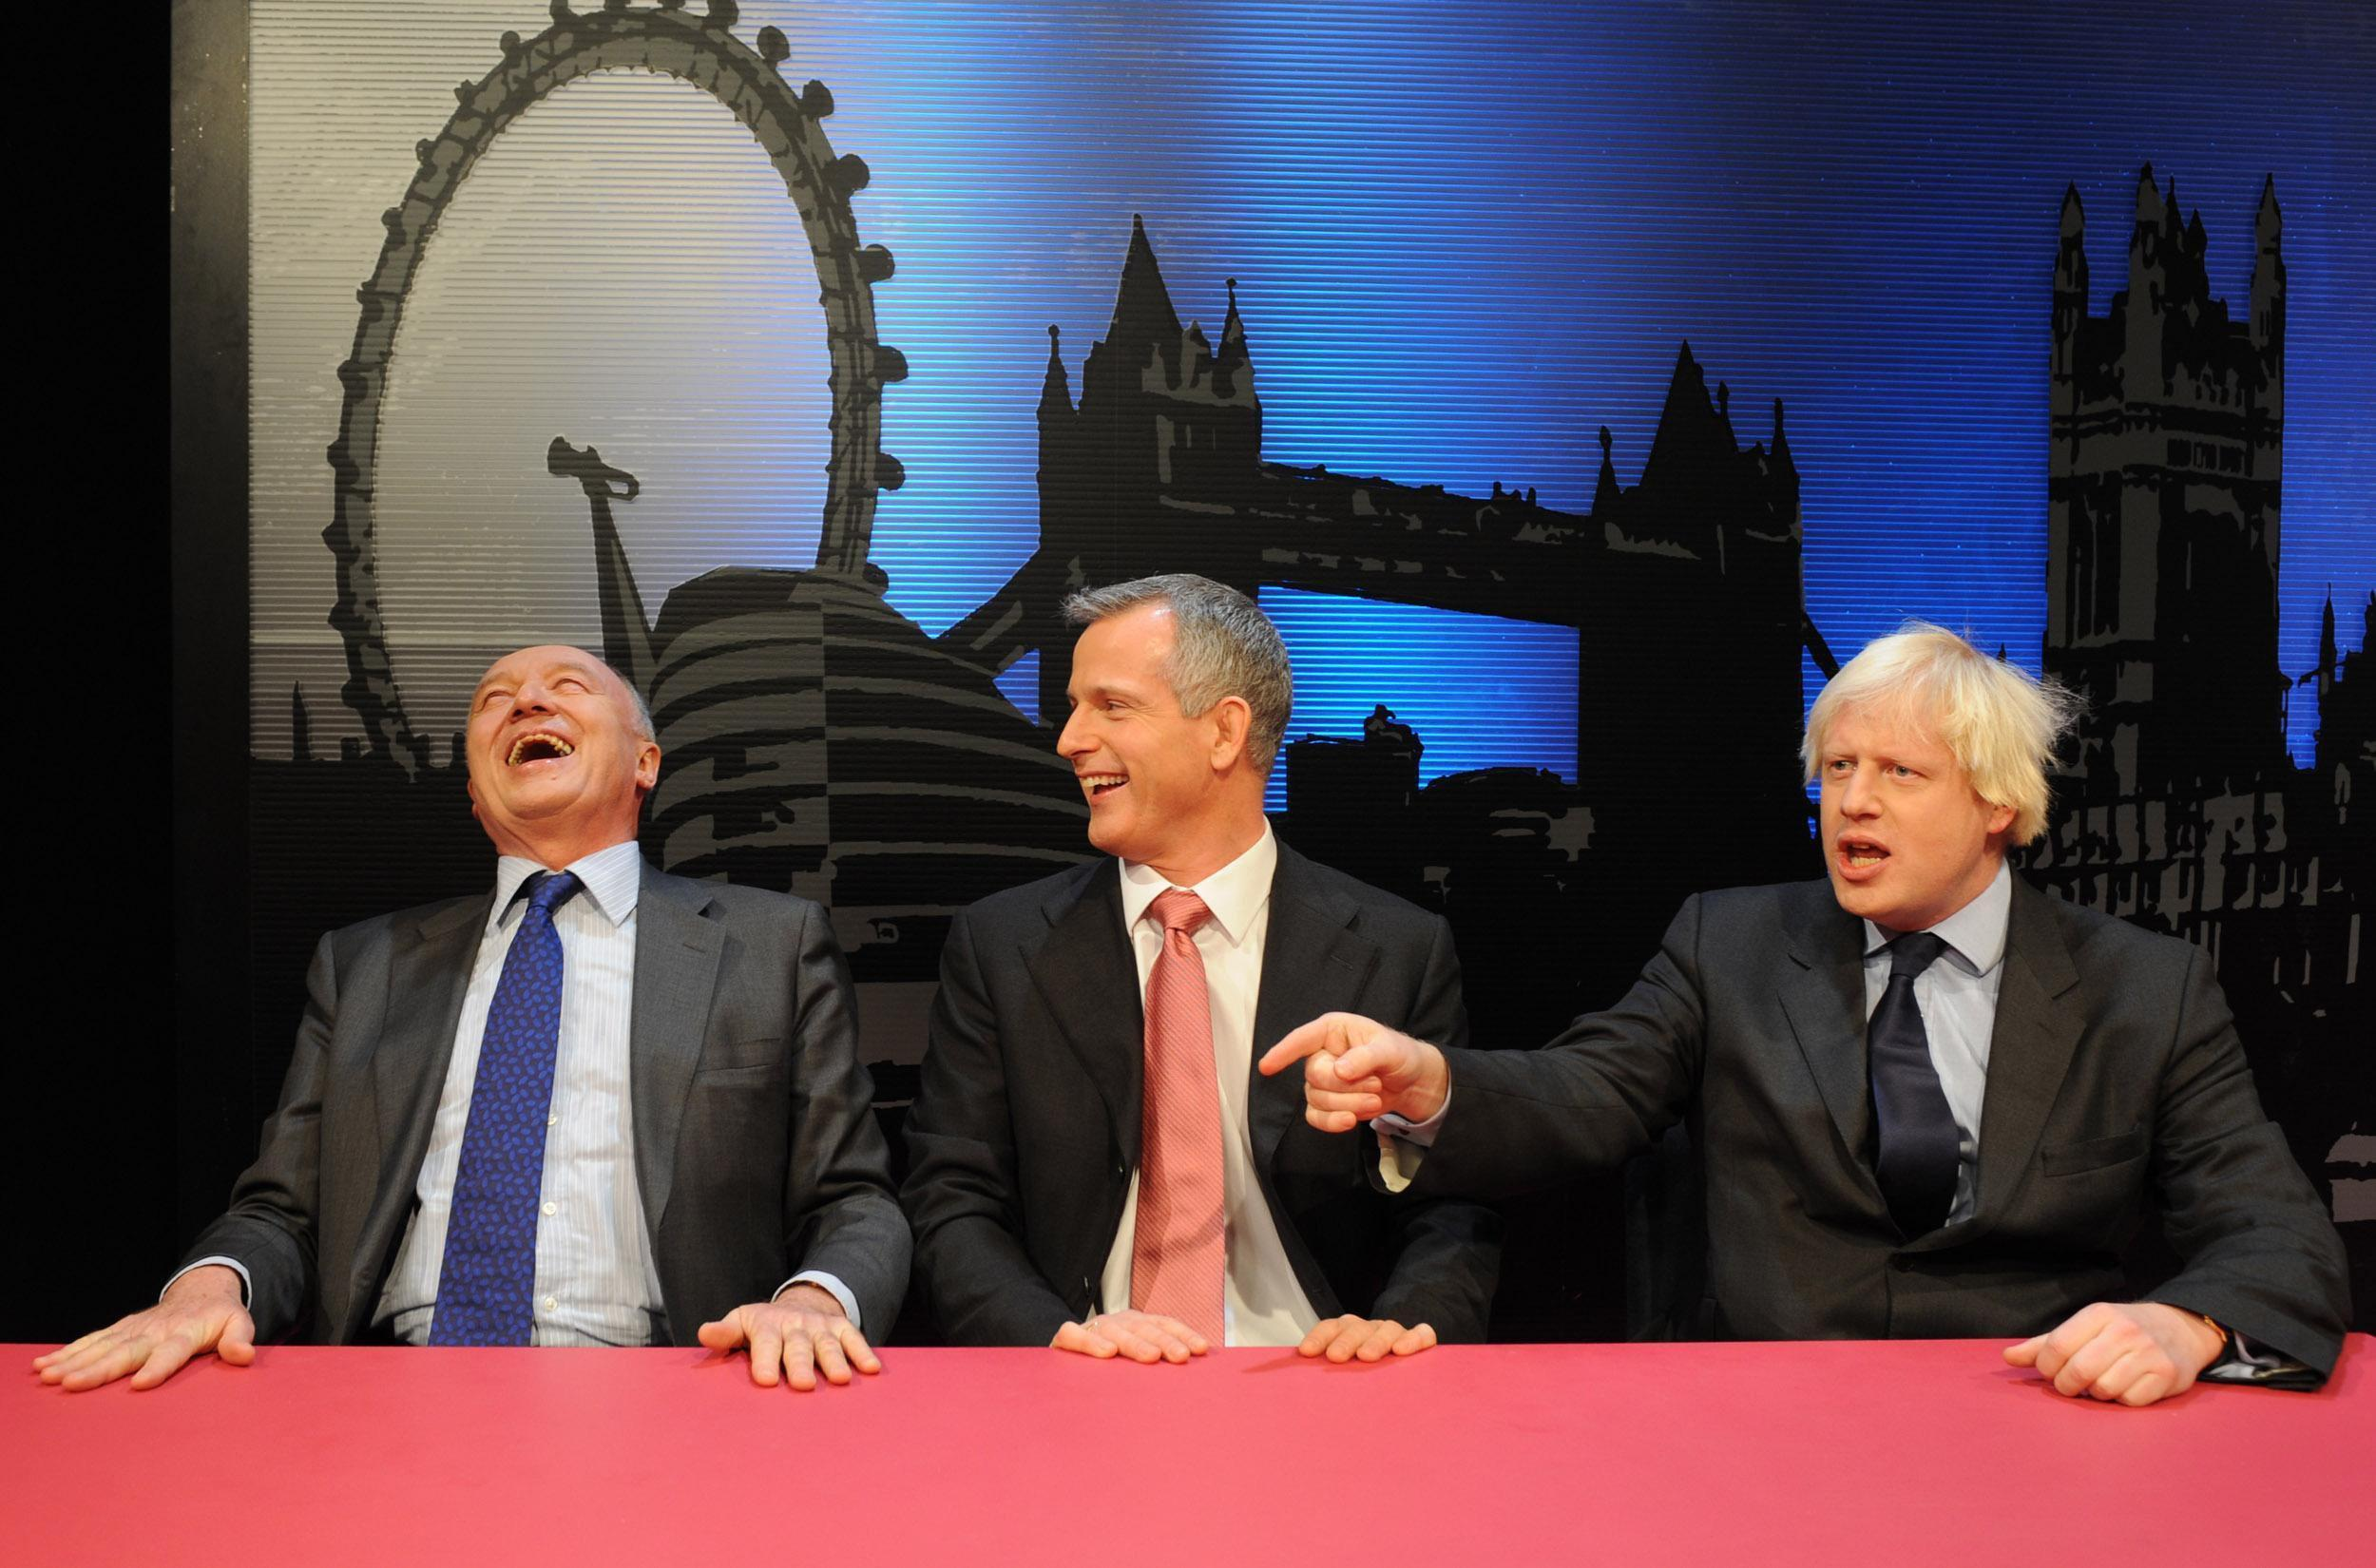 Candidates for Mayor of London, Labour's Ken Livingston (left), Lib Dem candidate Brian Paddick (centre) and Boris Johnson of the Conservative party, appear together on television debate.